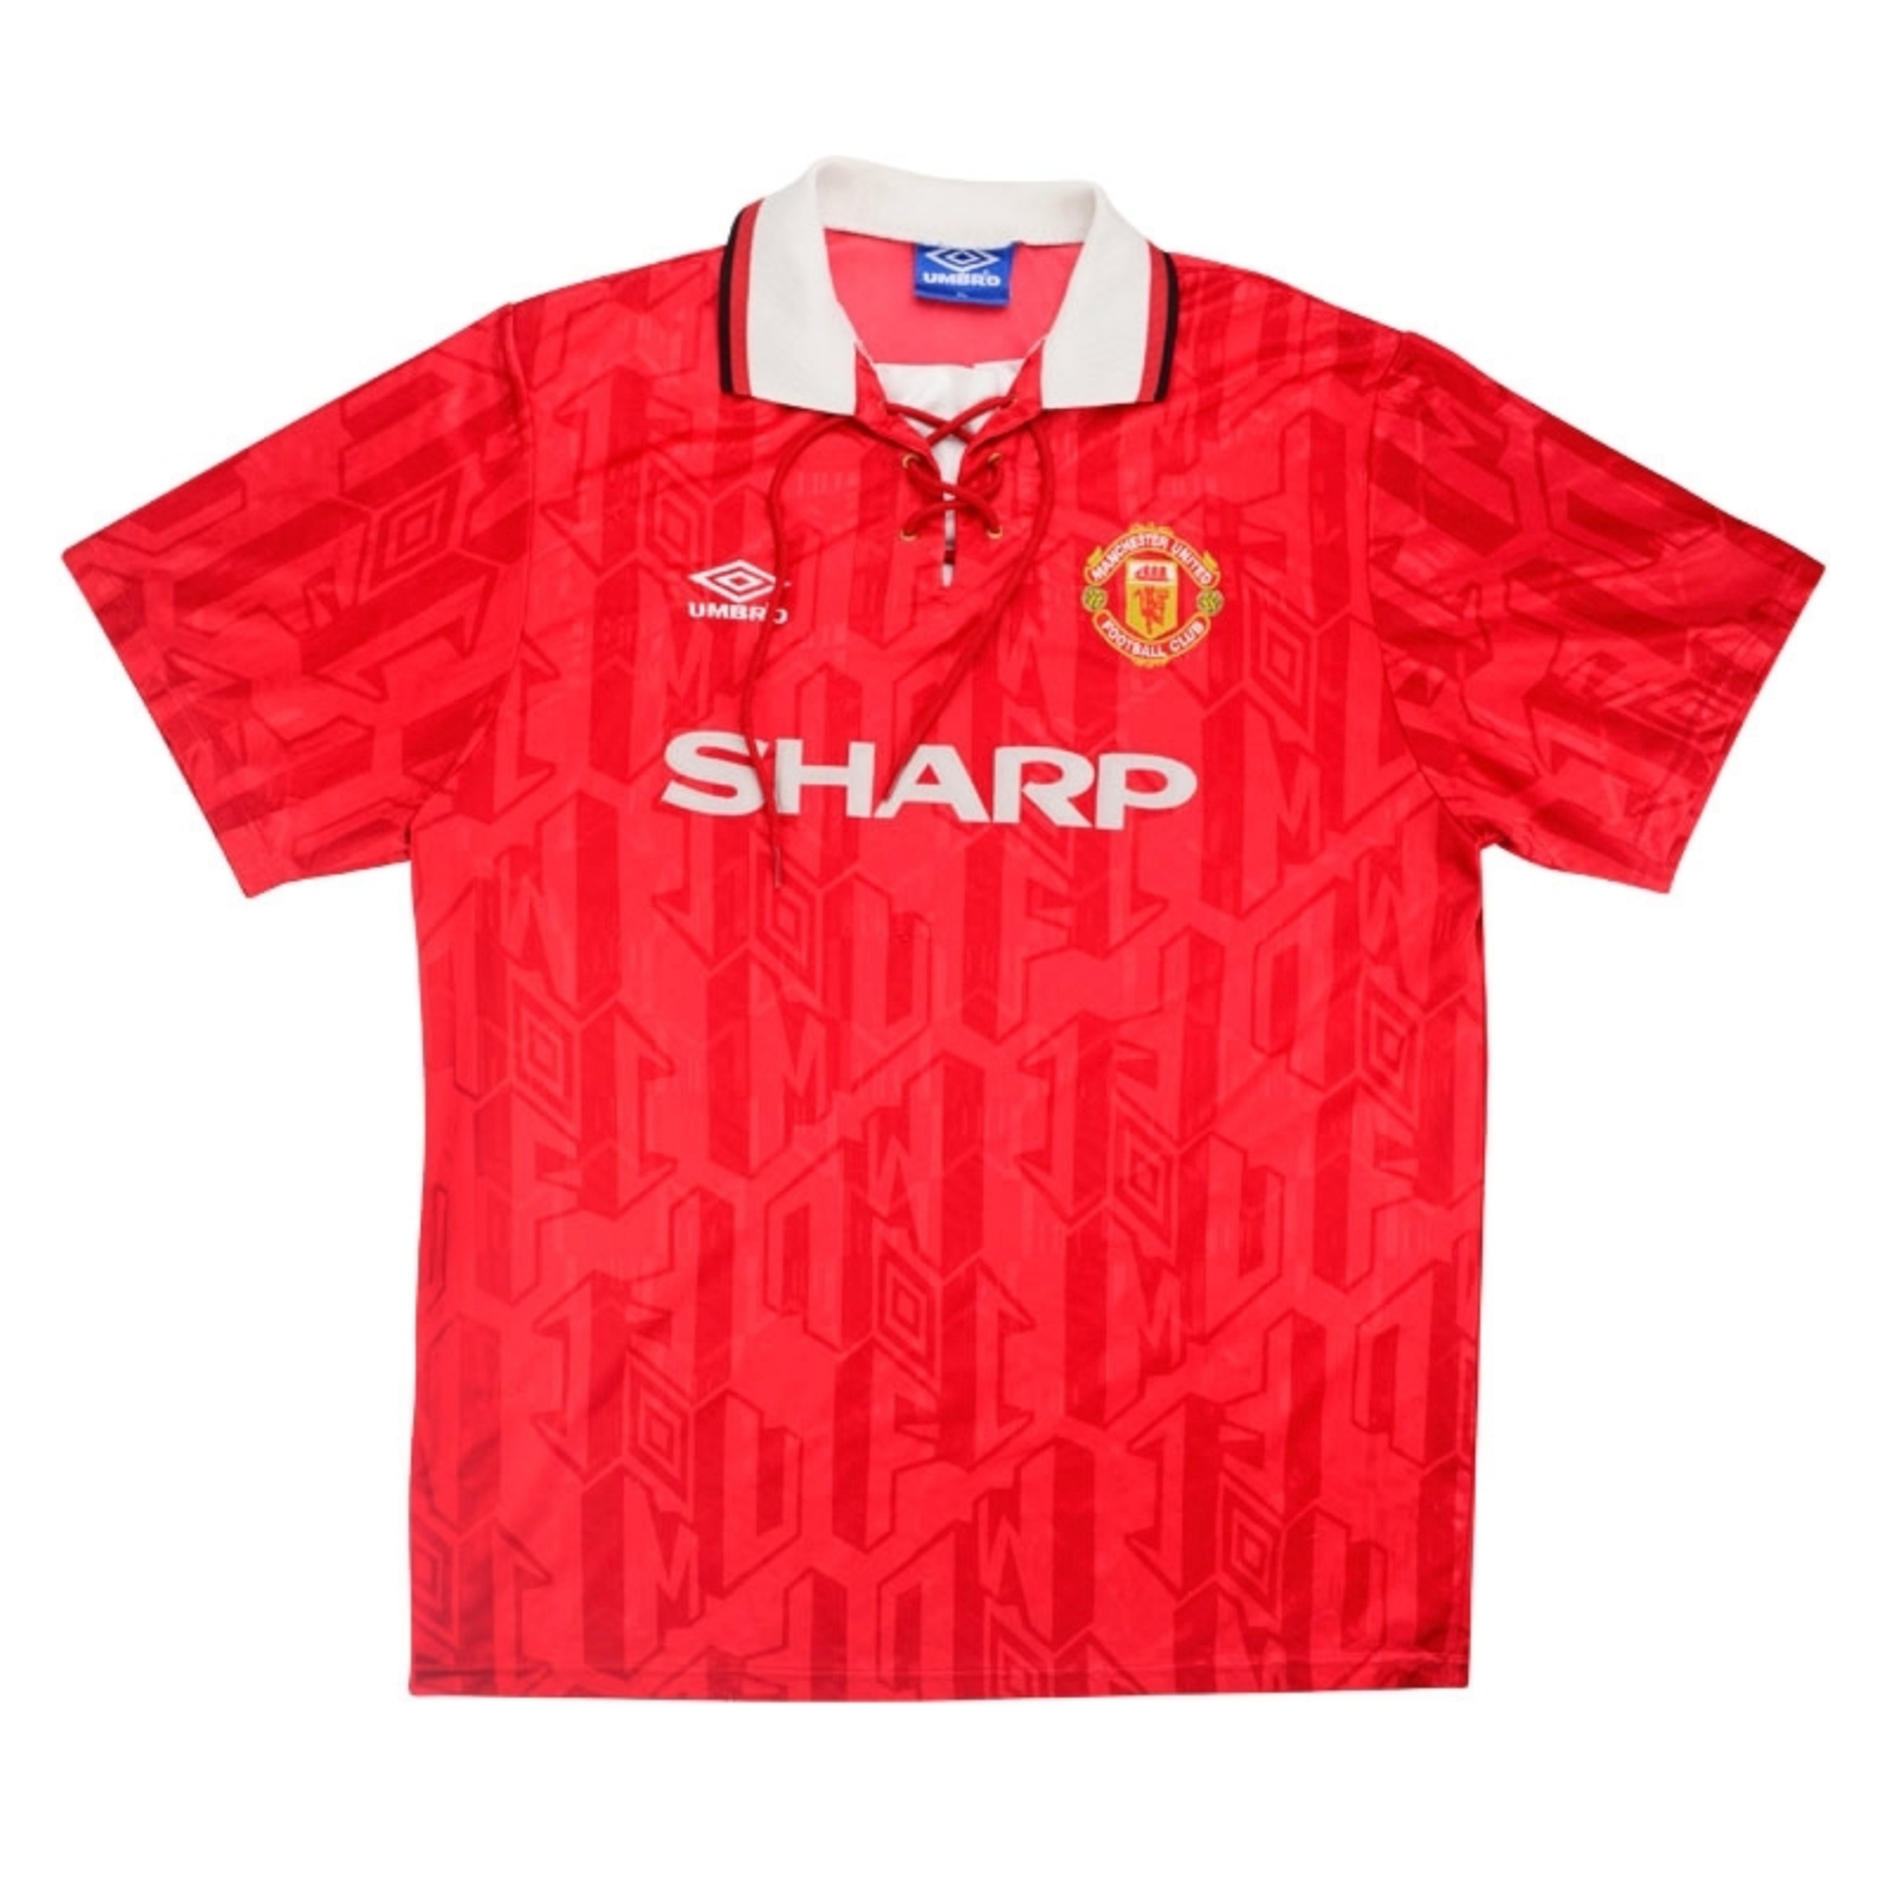 92-94 Manchester United home shirt